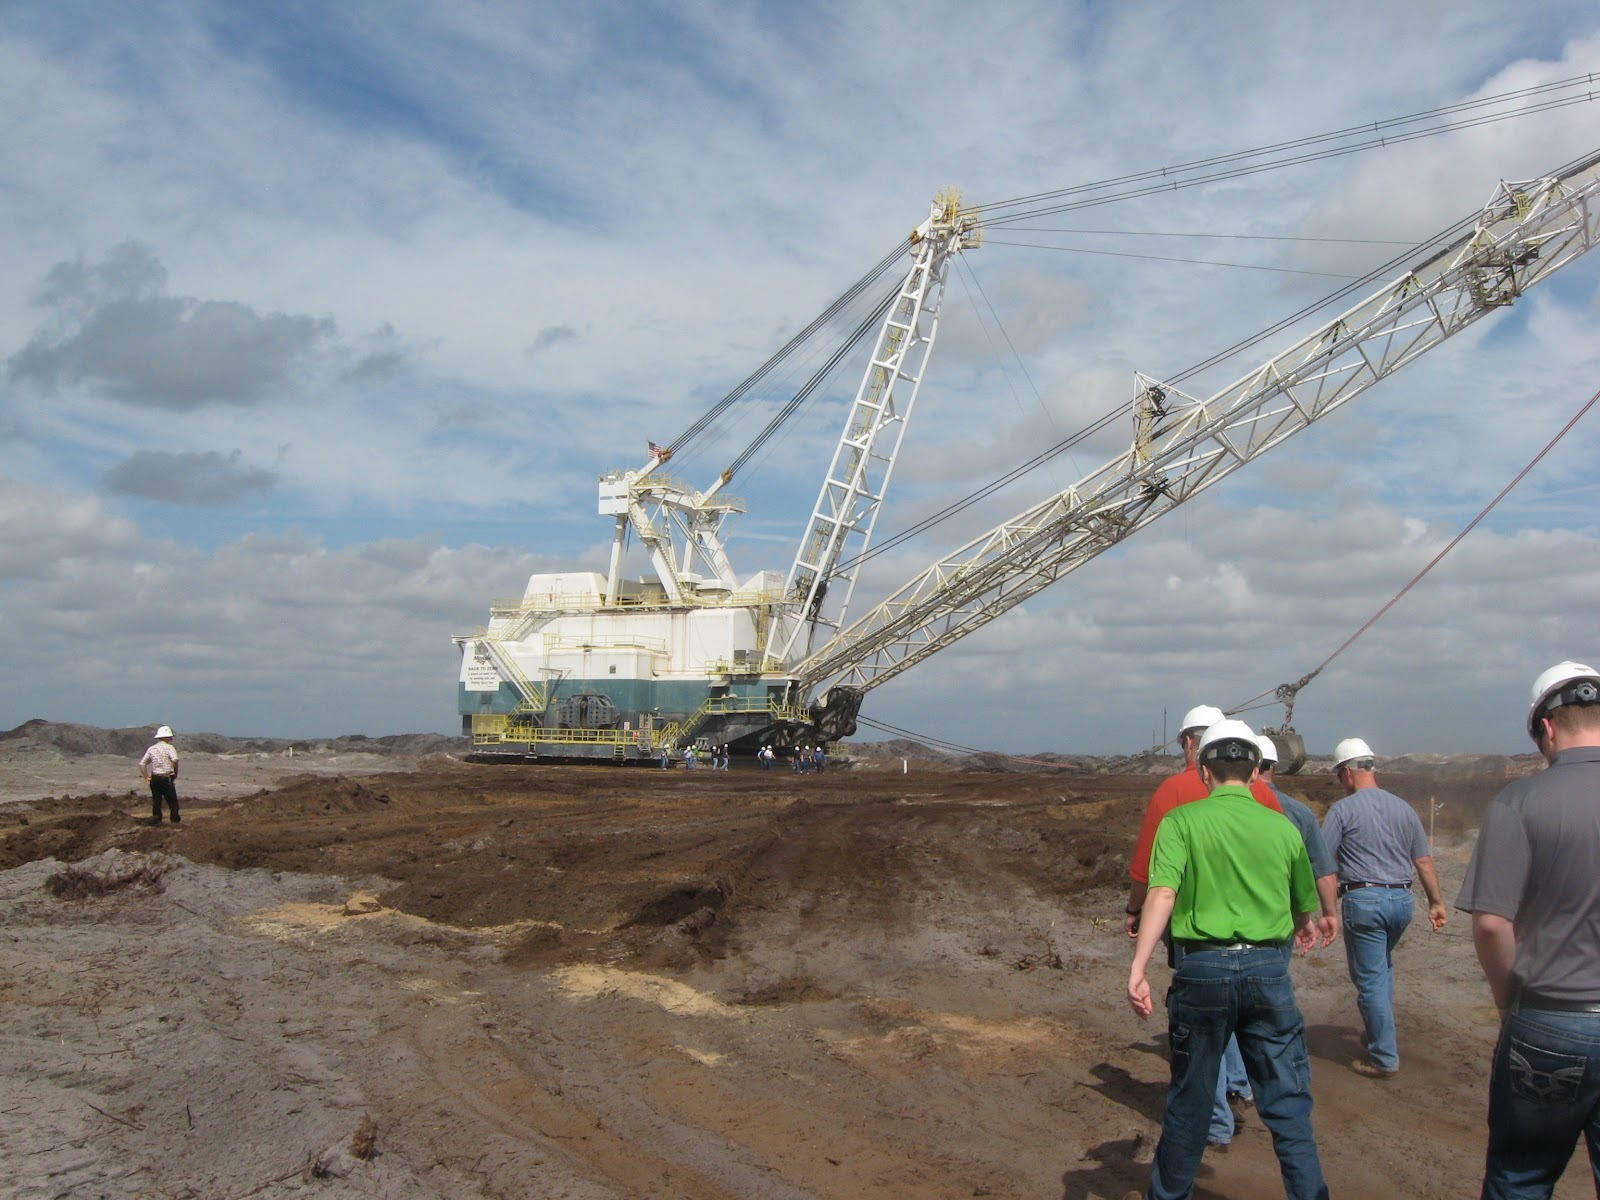 Environmentalists to Take Legal Action If Florida's Extra Phosphate Mining Is Authorized